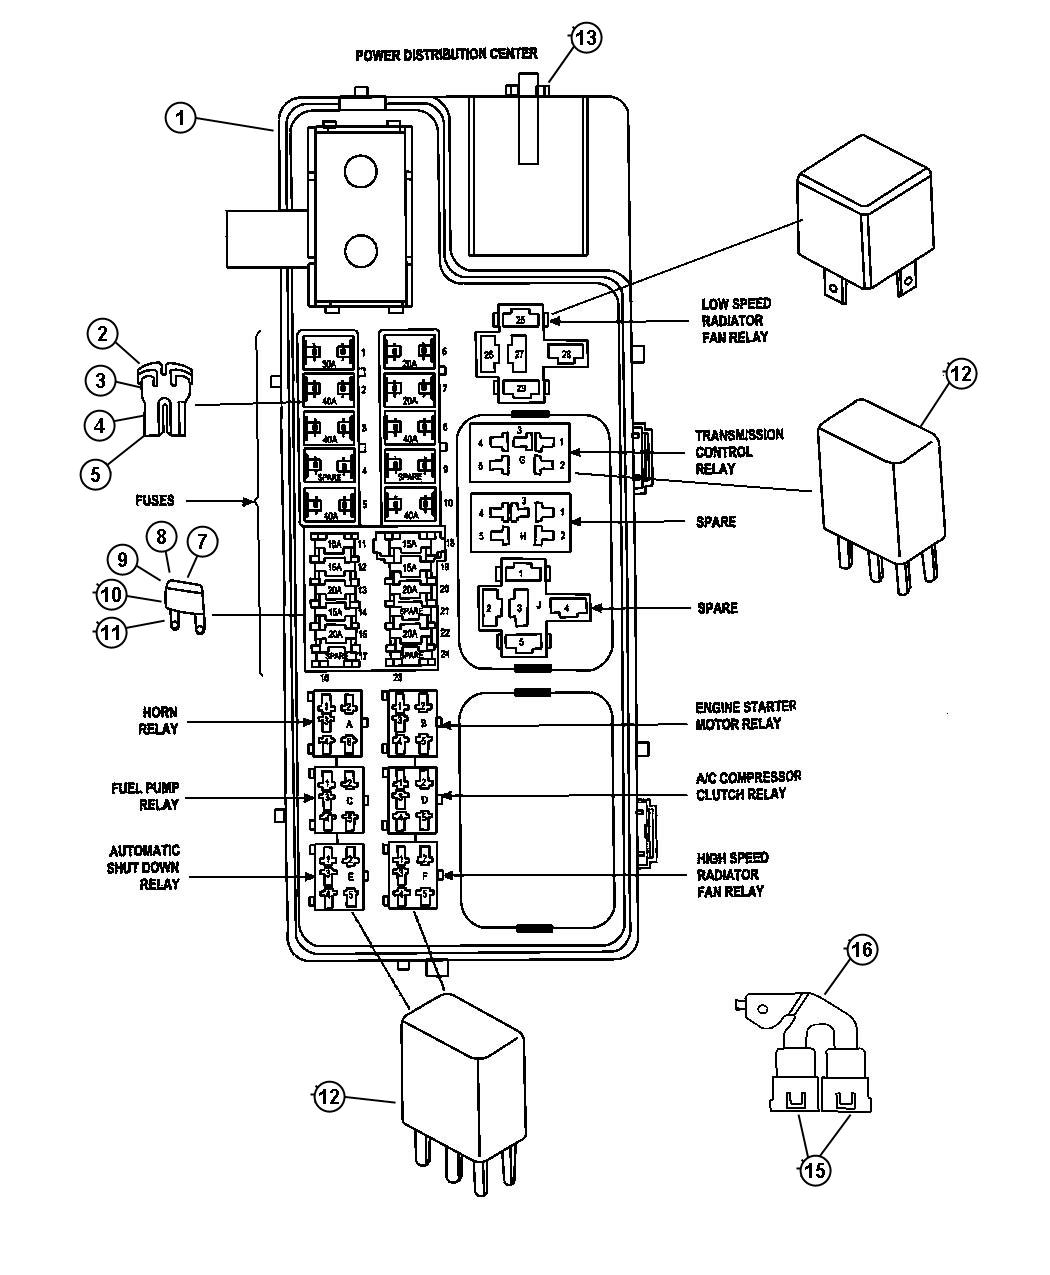 2000 Plymouth Neon Cooling System Diagram, 2000, Free